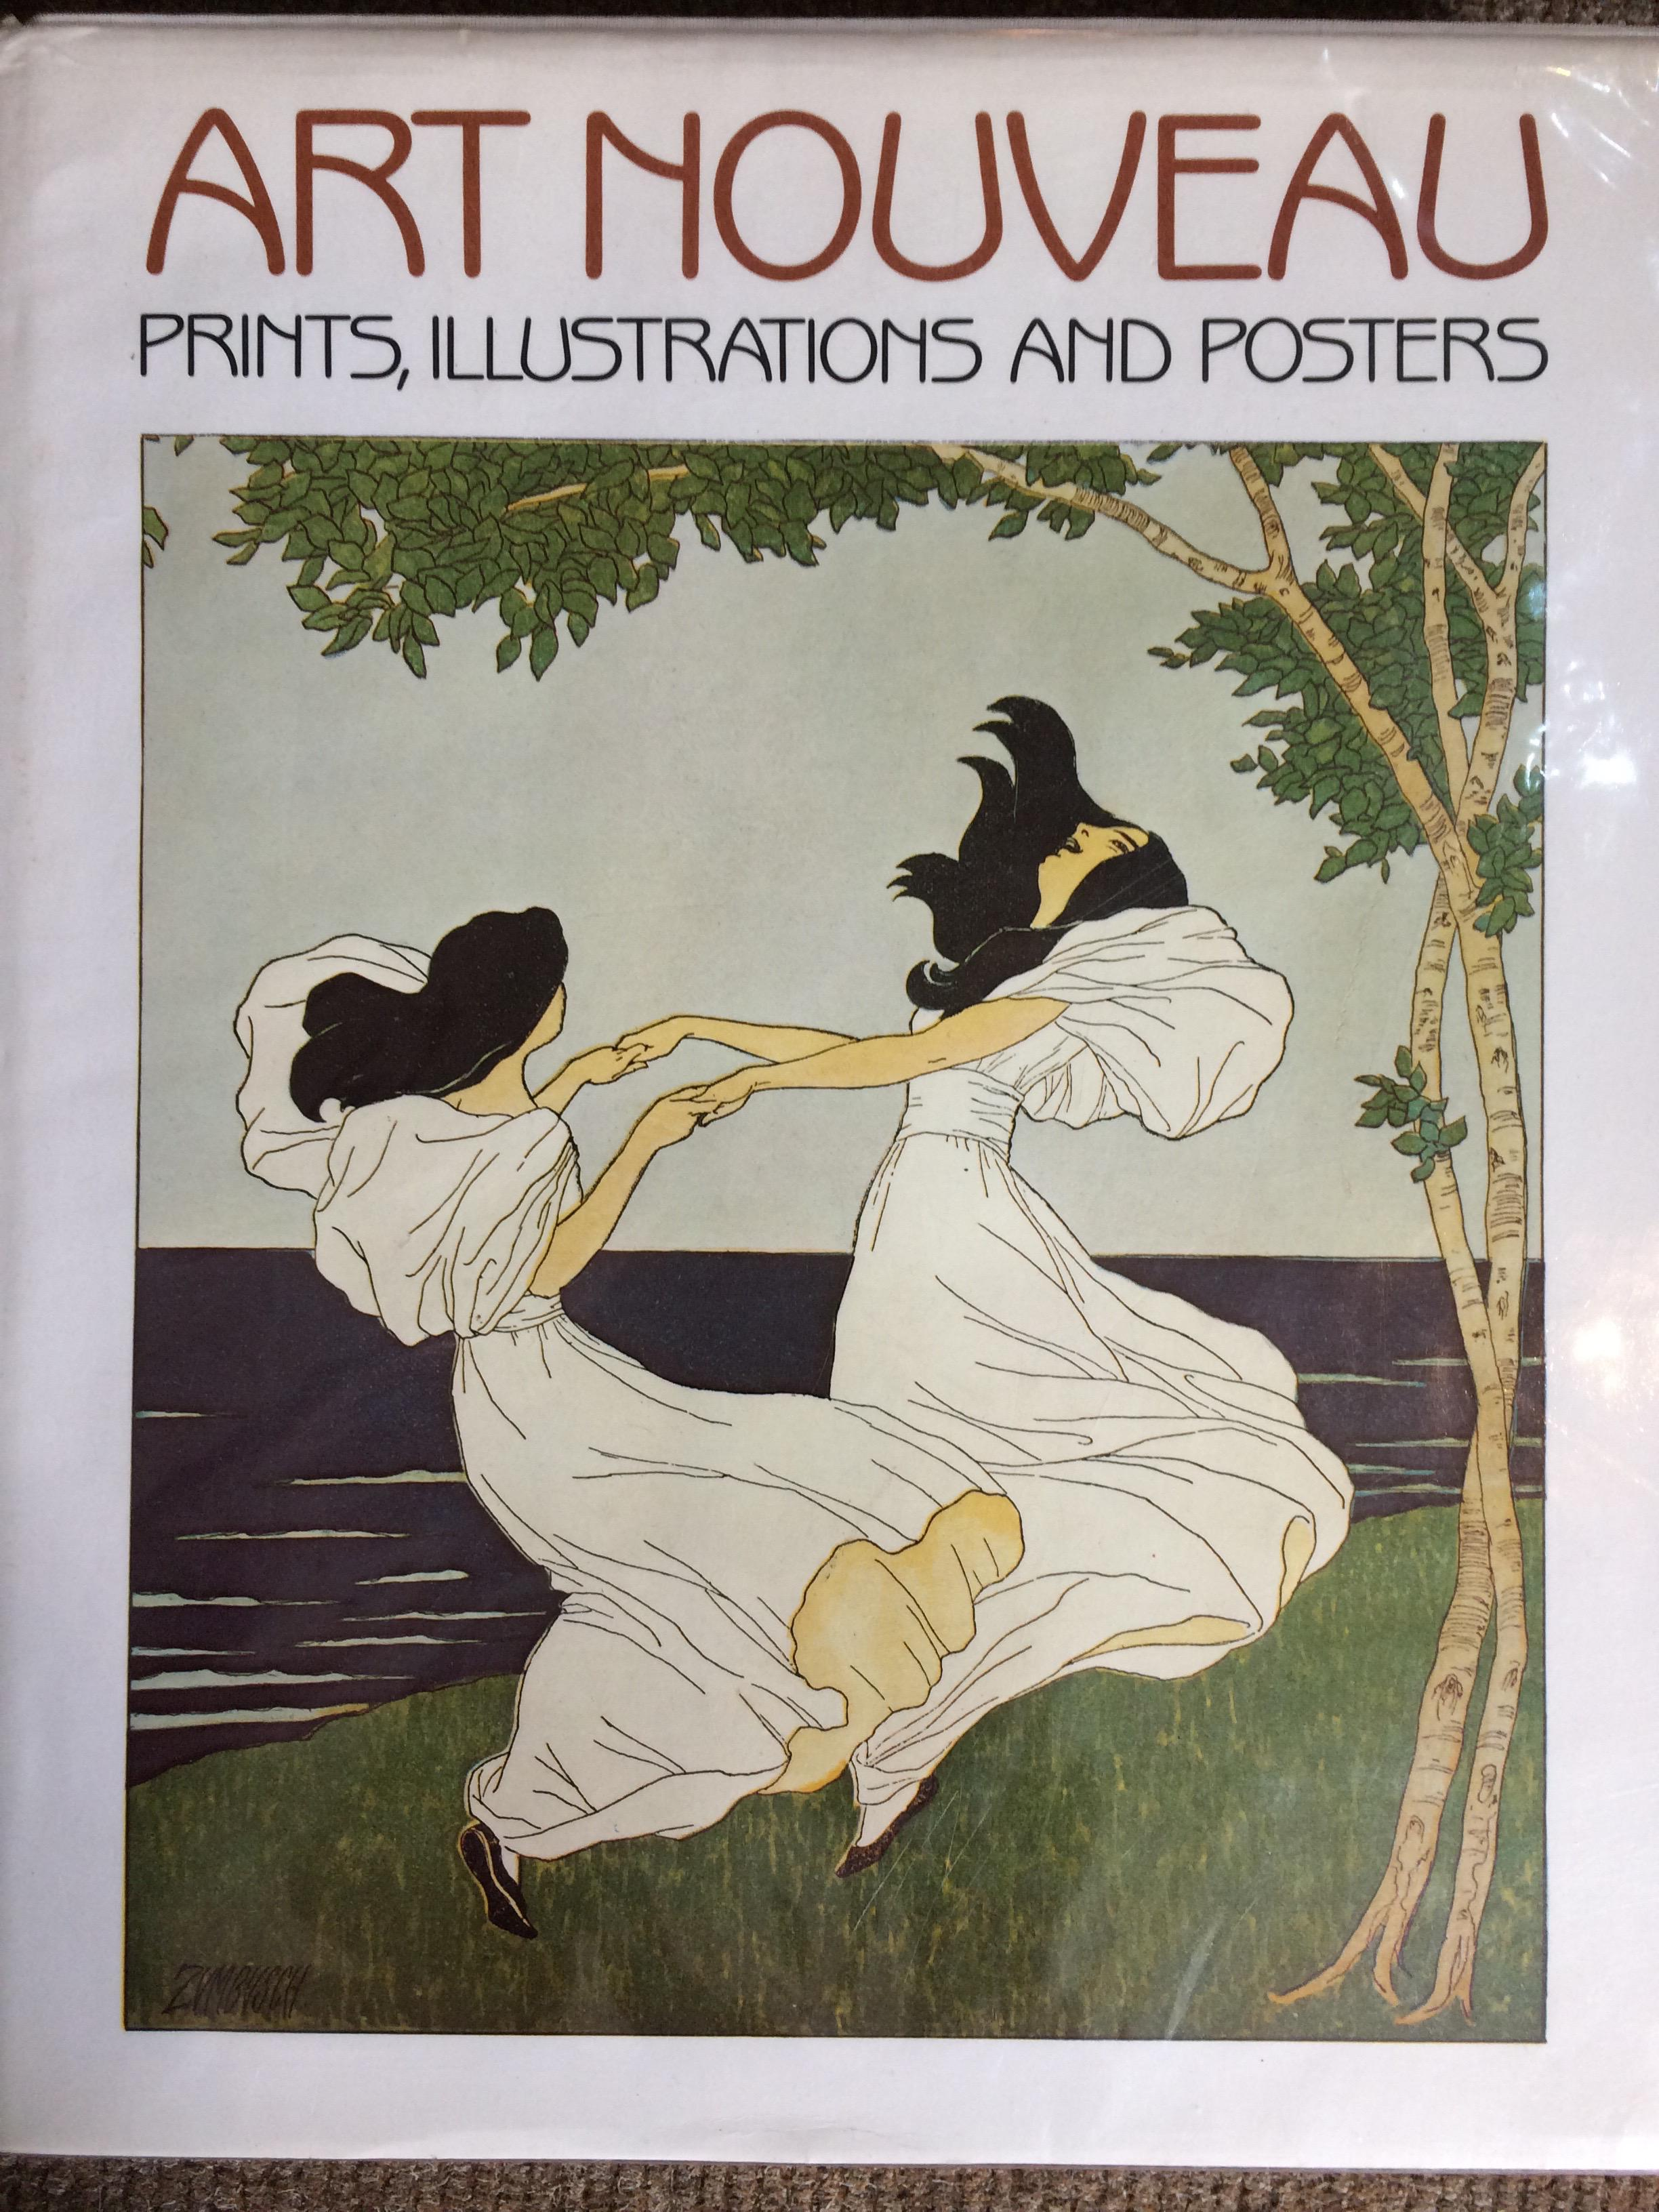 Art Nouveau Prints, Illustrations and Posters